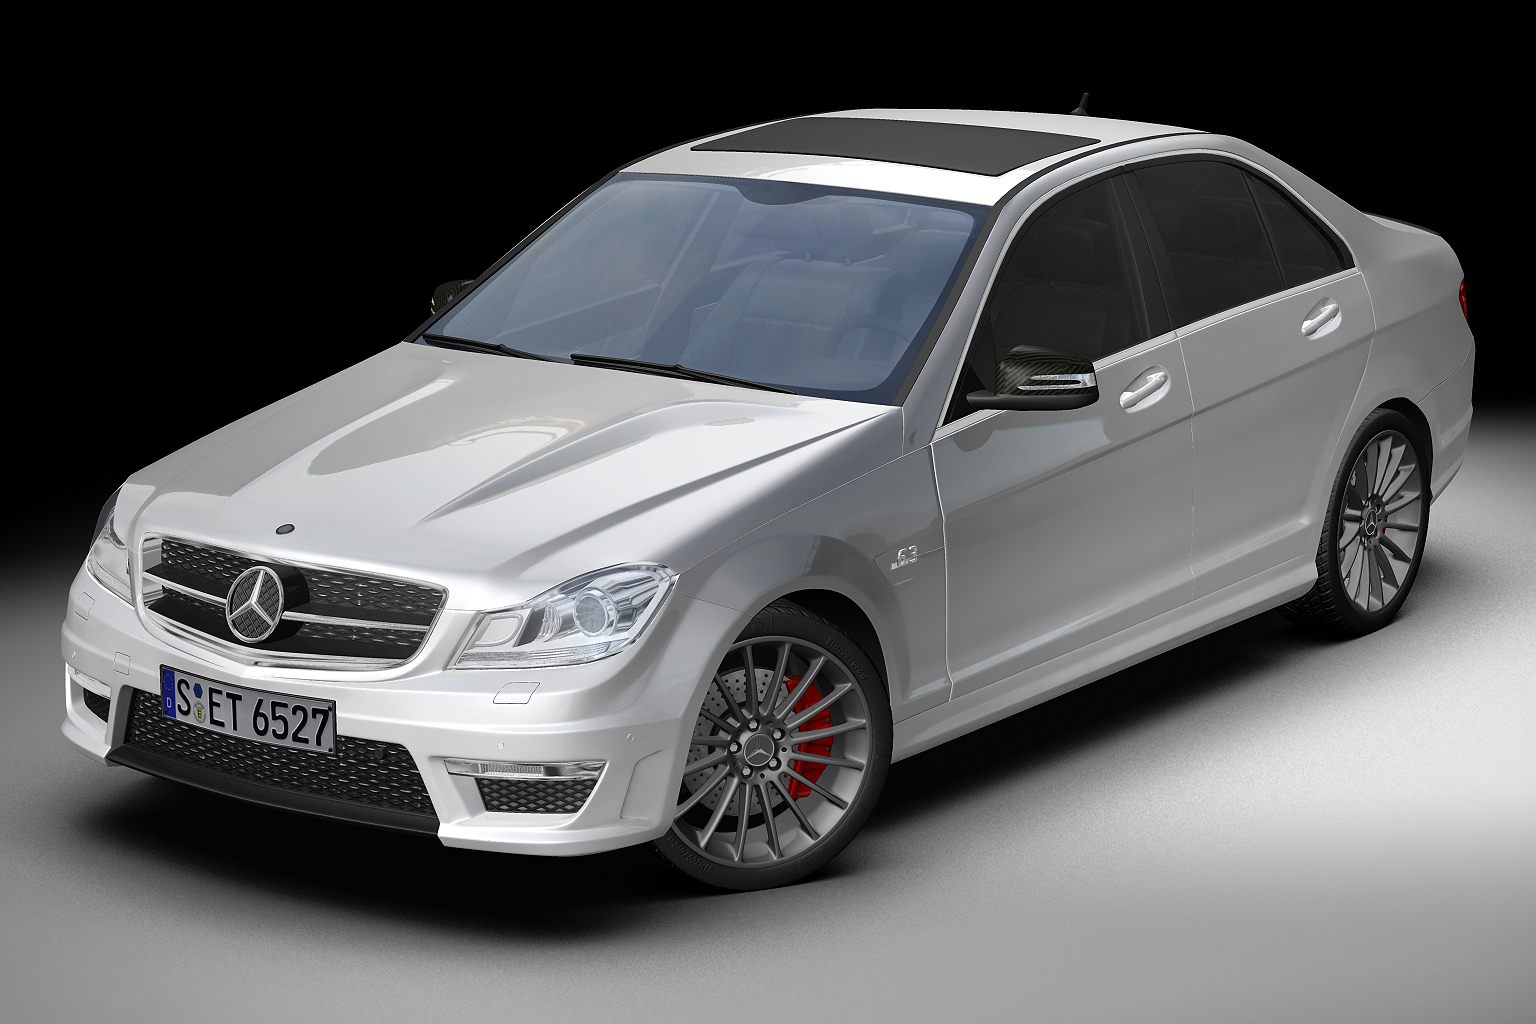 2012 mercedes benz c63 model 3d model 3ds max fbx c4d hr hr xsi obj 136247